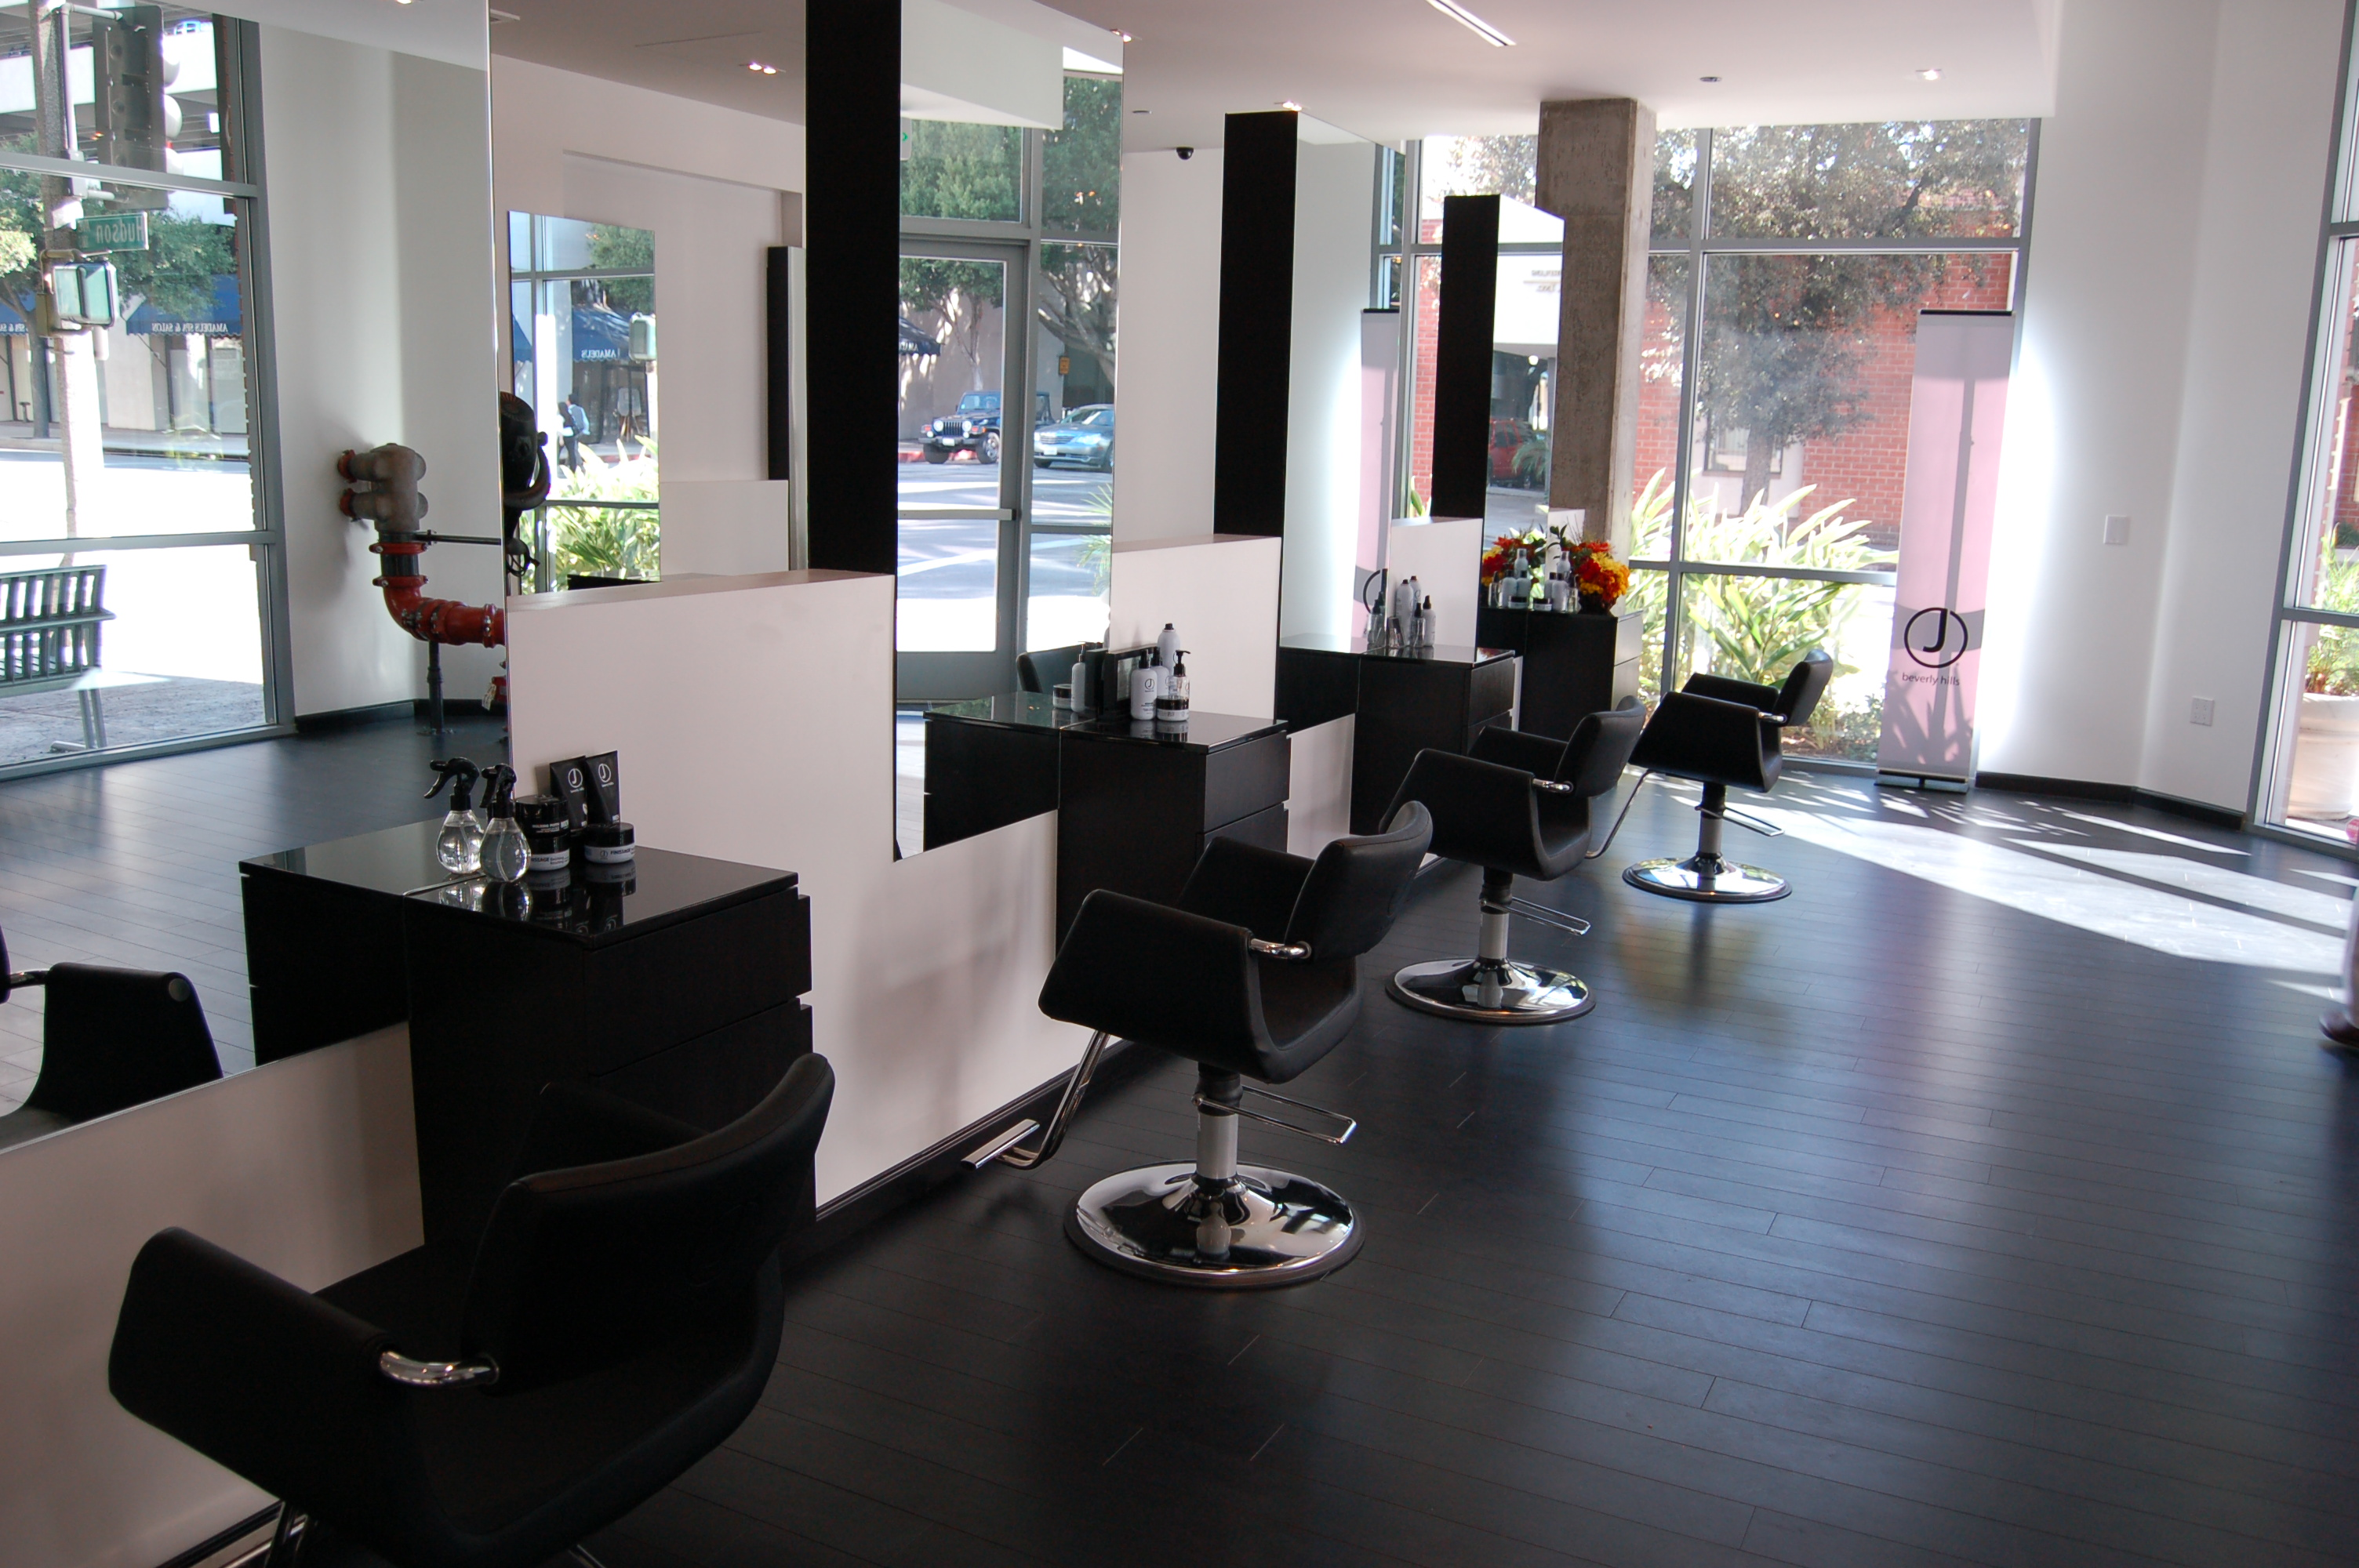 Hair Salons In : hair salon Pasadena, CA - Intuit Business Directory